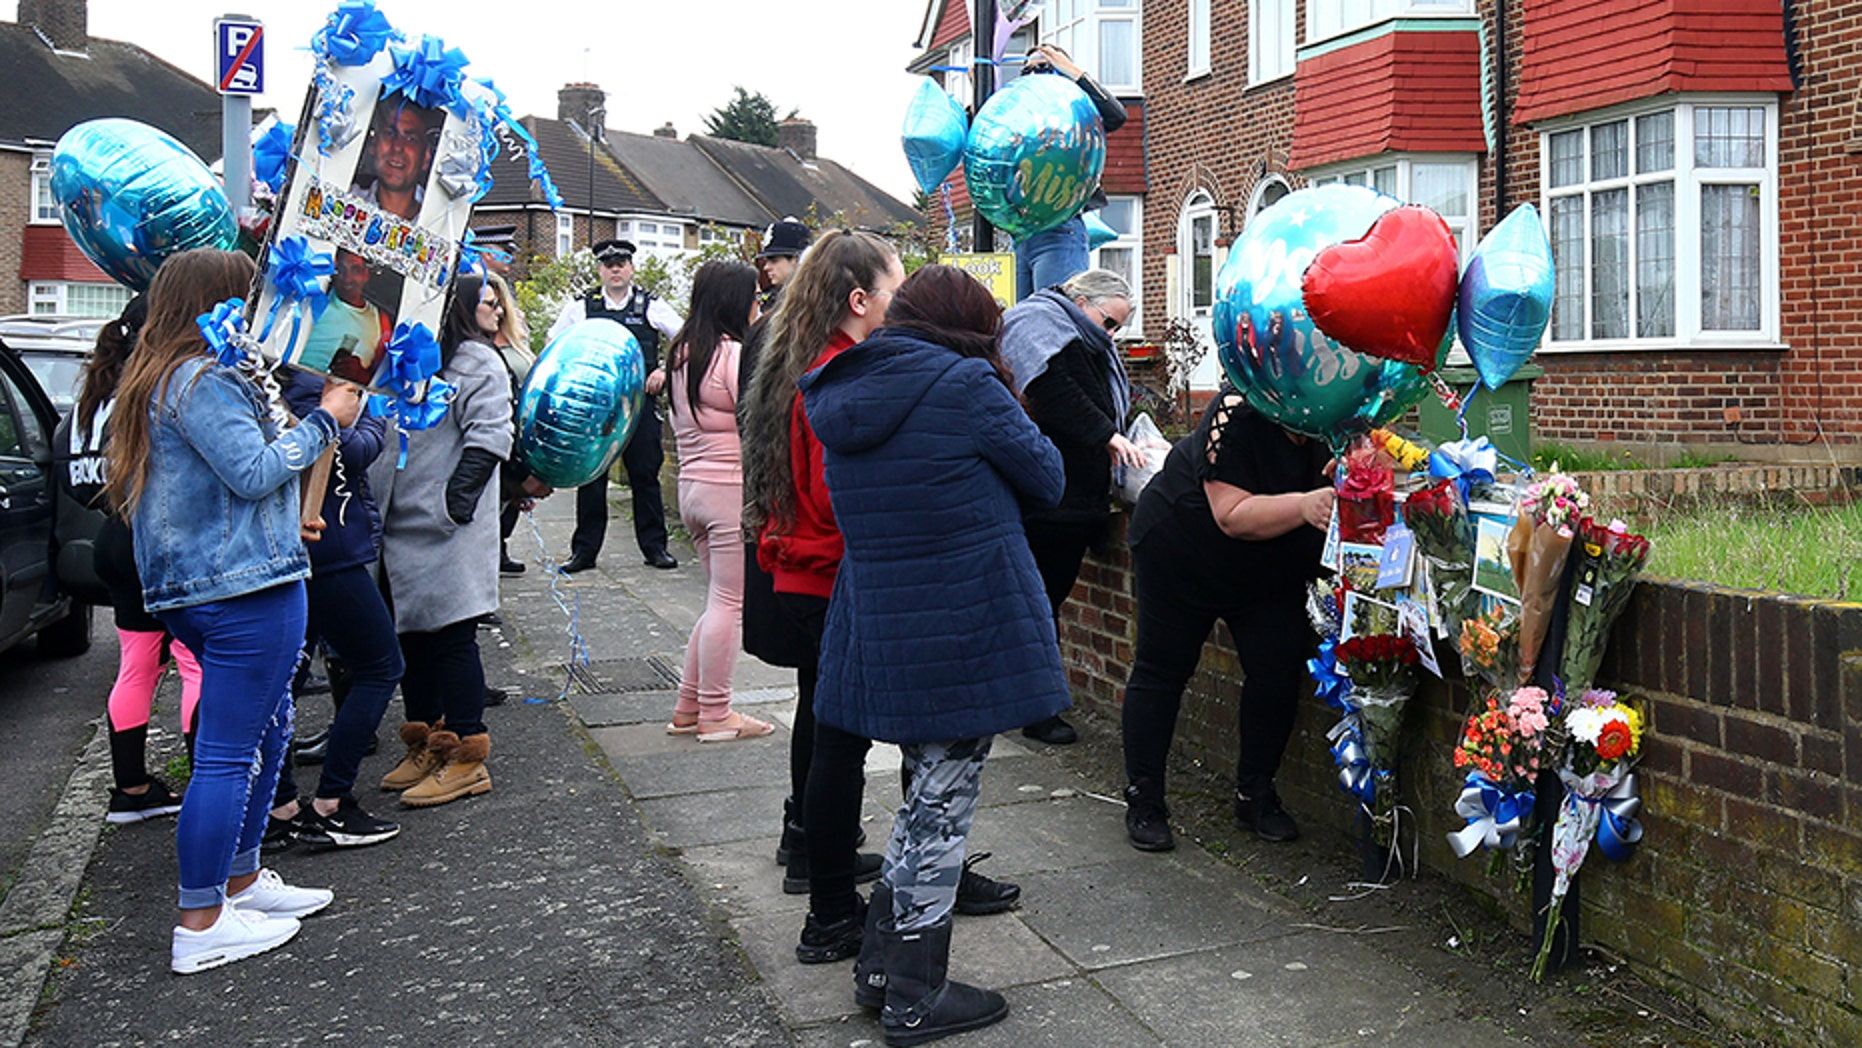 A group of women brought flowers and balloons to the spot in London where Henry Vincent was fatally stabbed in botched burglary at the home of an elderly man, Richard Osborn-Brooks. Vincent would have turned 38 Sunday.